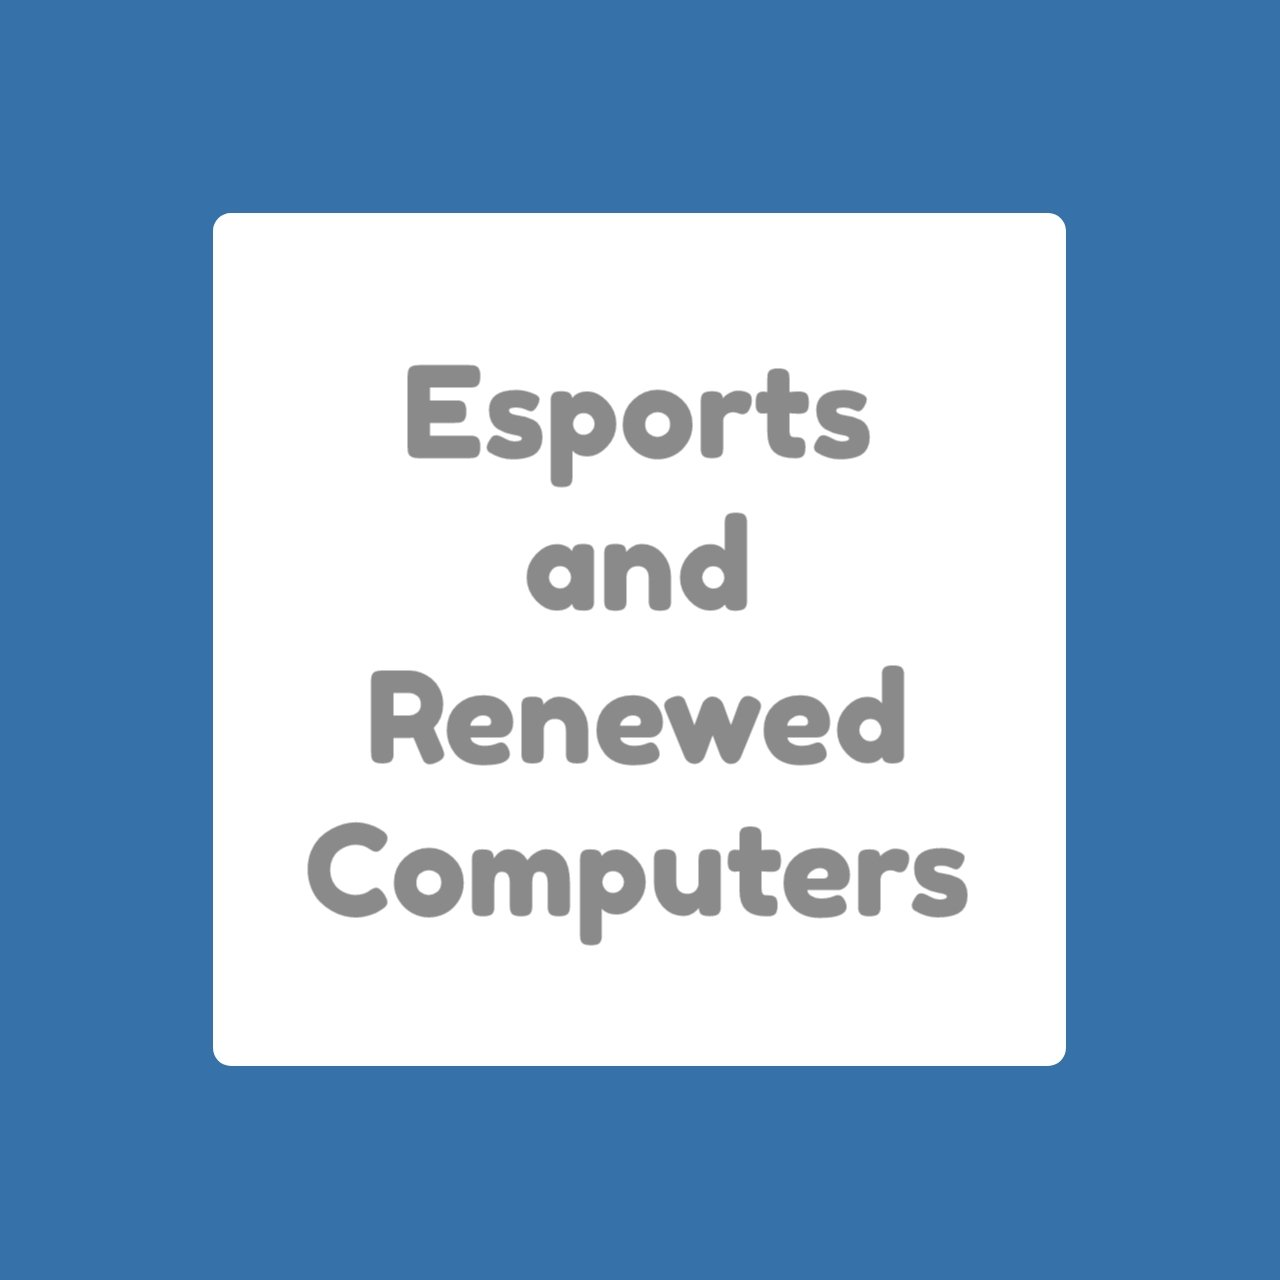 Kids, Esports and Refurbished Computers Renewed for 2021